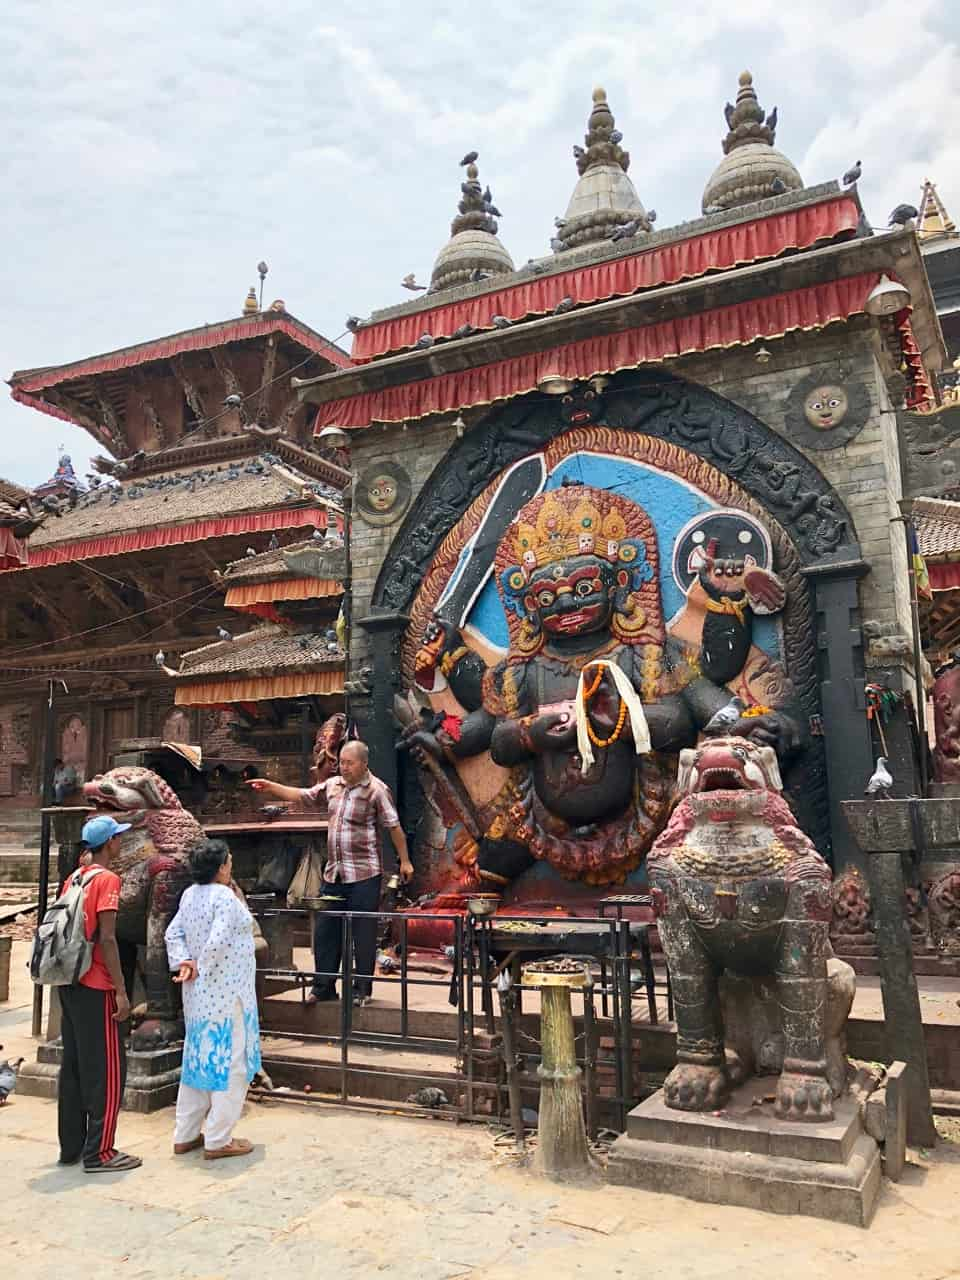 kalbhairav-shrine-durbar-square-kathmandu-photo